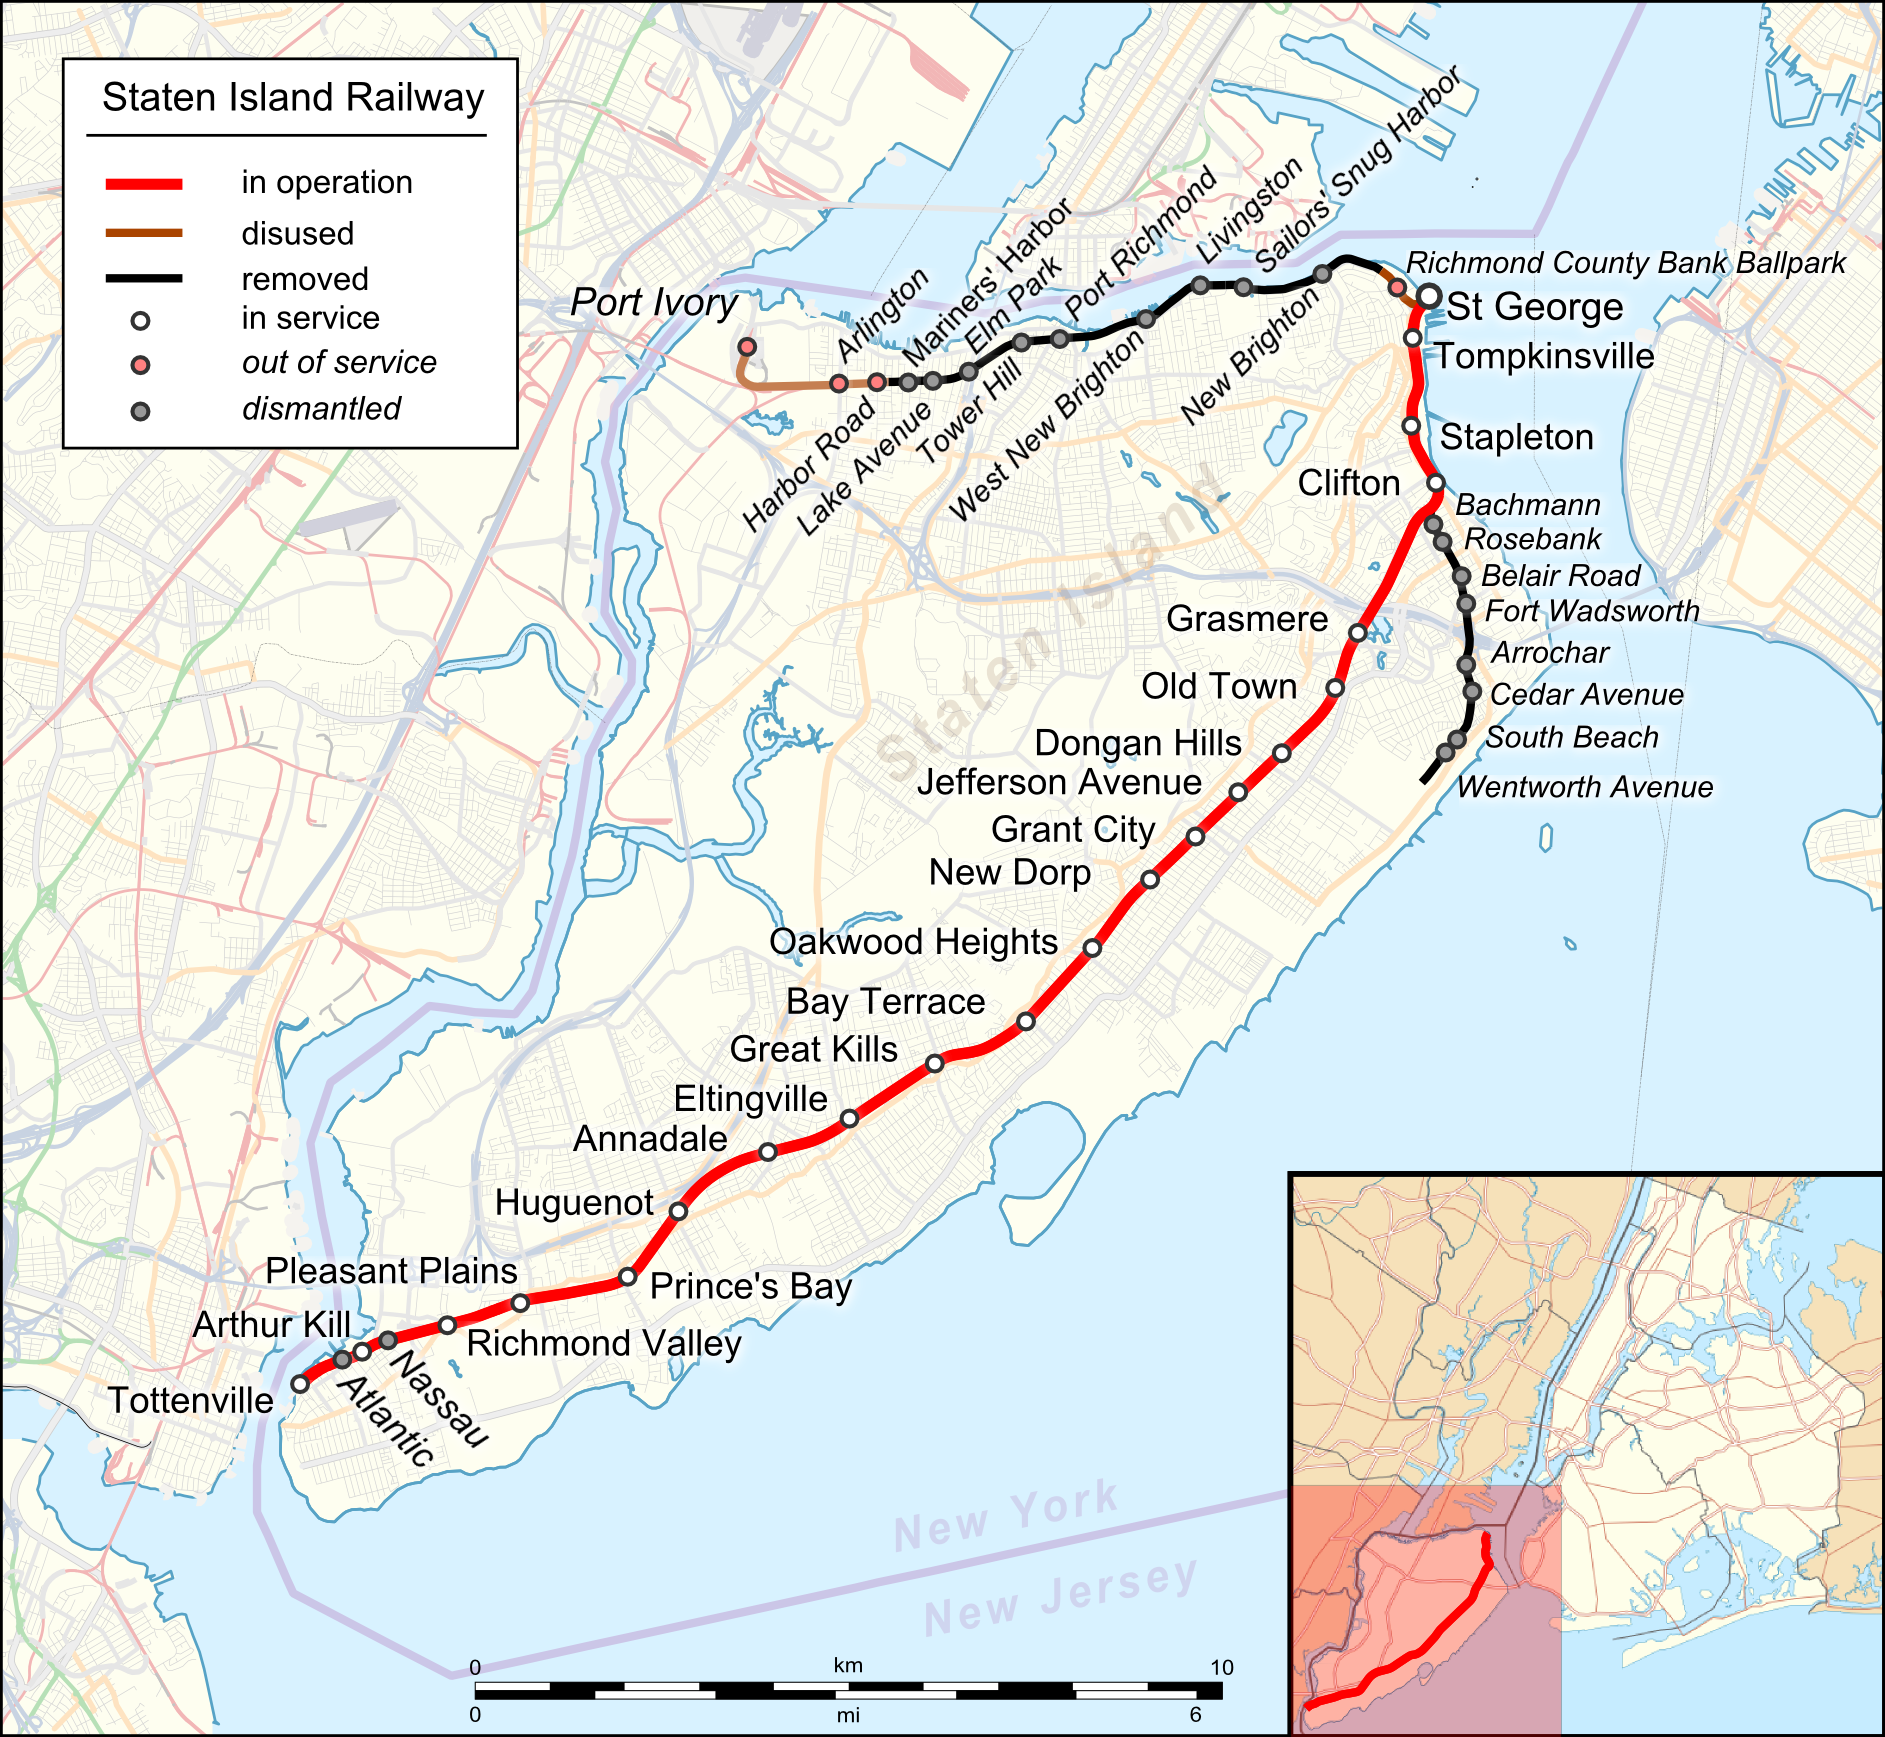 File:Map Staten Island Railway en.png - Wikimedia Commons on map of brooklyn staten island, map of tottenville staten island, map of mariners harbor staten island, map of oakwood staten island, map of castleton corners staten island, map of new dorp staten island, map of great kills staten island, map of grasmere staten island, map of rosebank staten island, map of west brighton staten island, map of willowbrook staten island, map of eltingville staten island, map of park hill staten island, map of stapleton staten island, map of tompkinsville staten island, map of south beach staten island, map of fort wadsworth staten island, map of graniteville staten island, map of annadale staten island, map of wagner college staten island,